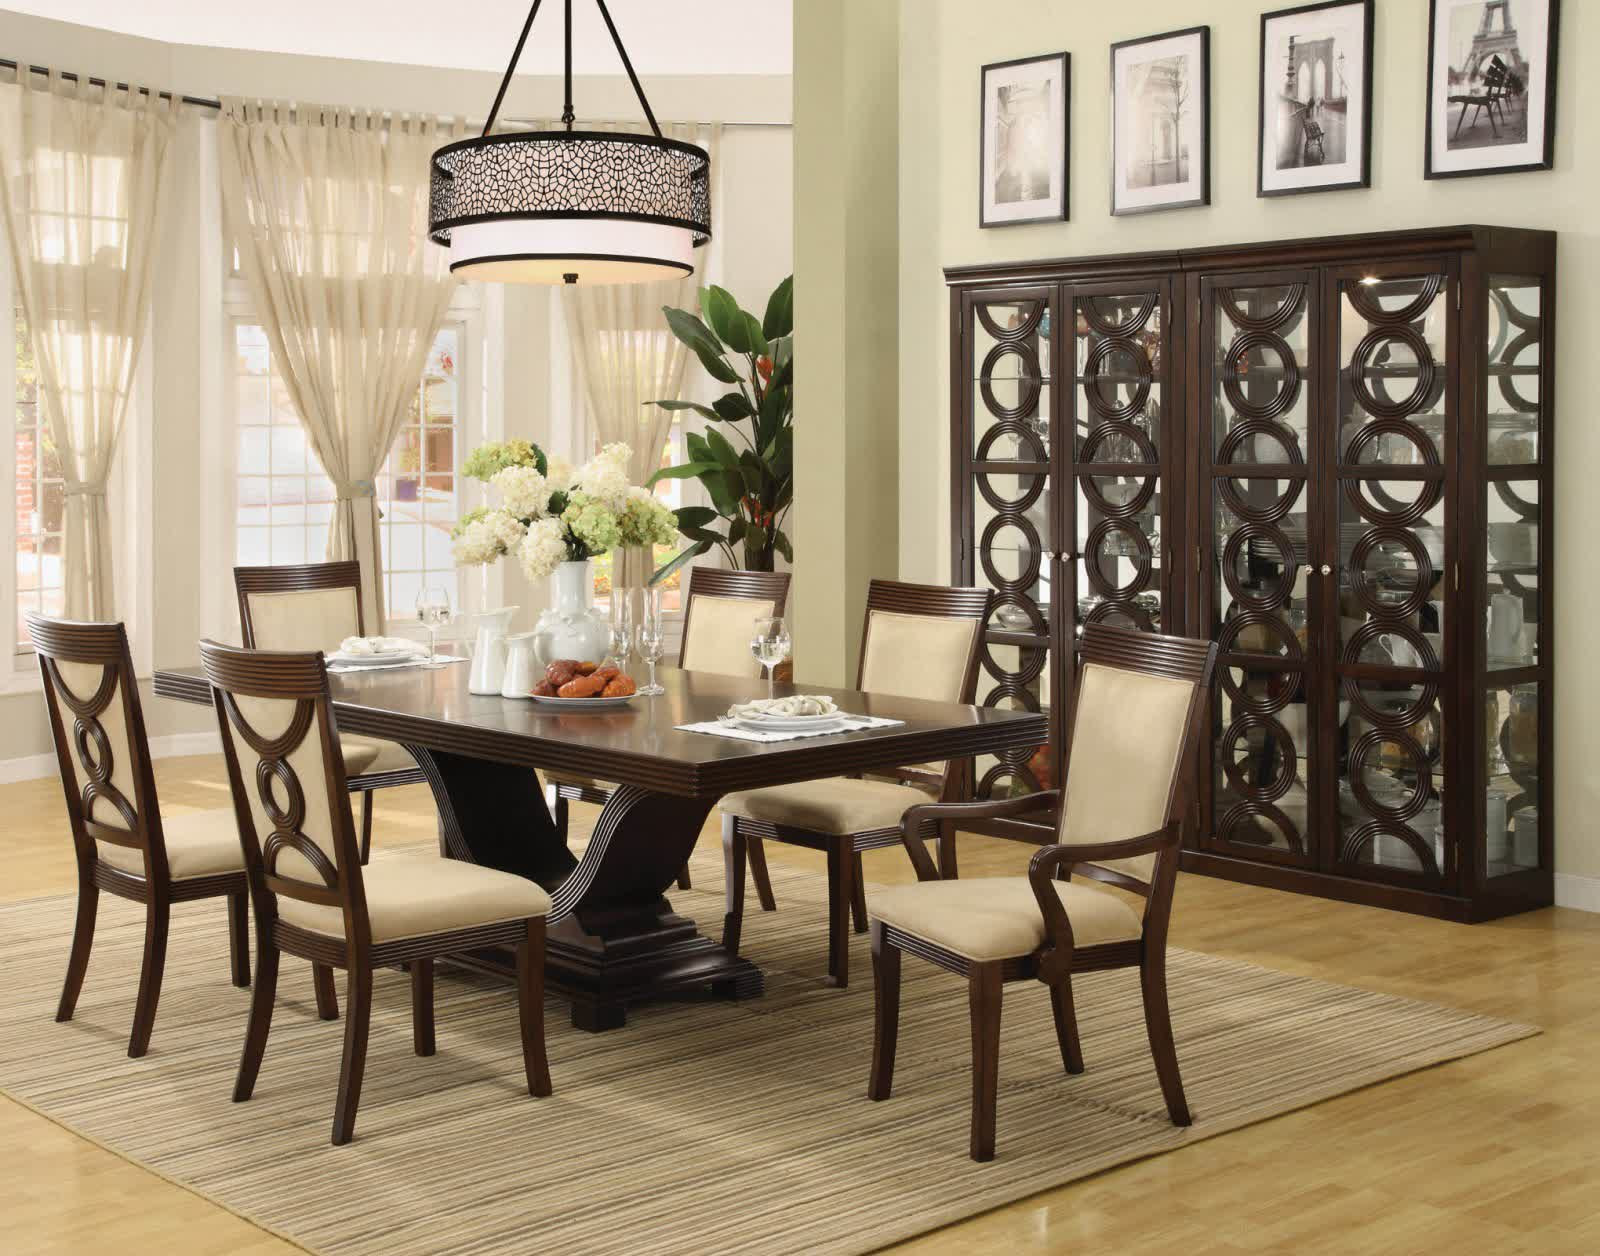 Home Design Architecture Dining Room Table Centerpieces